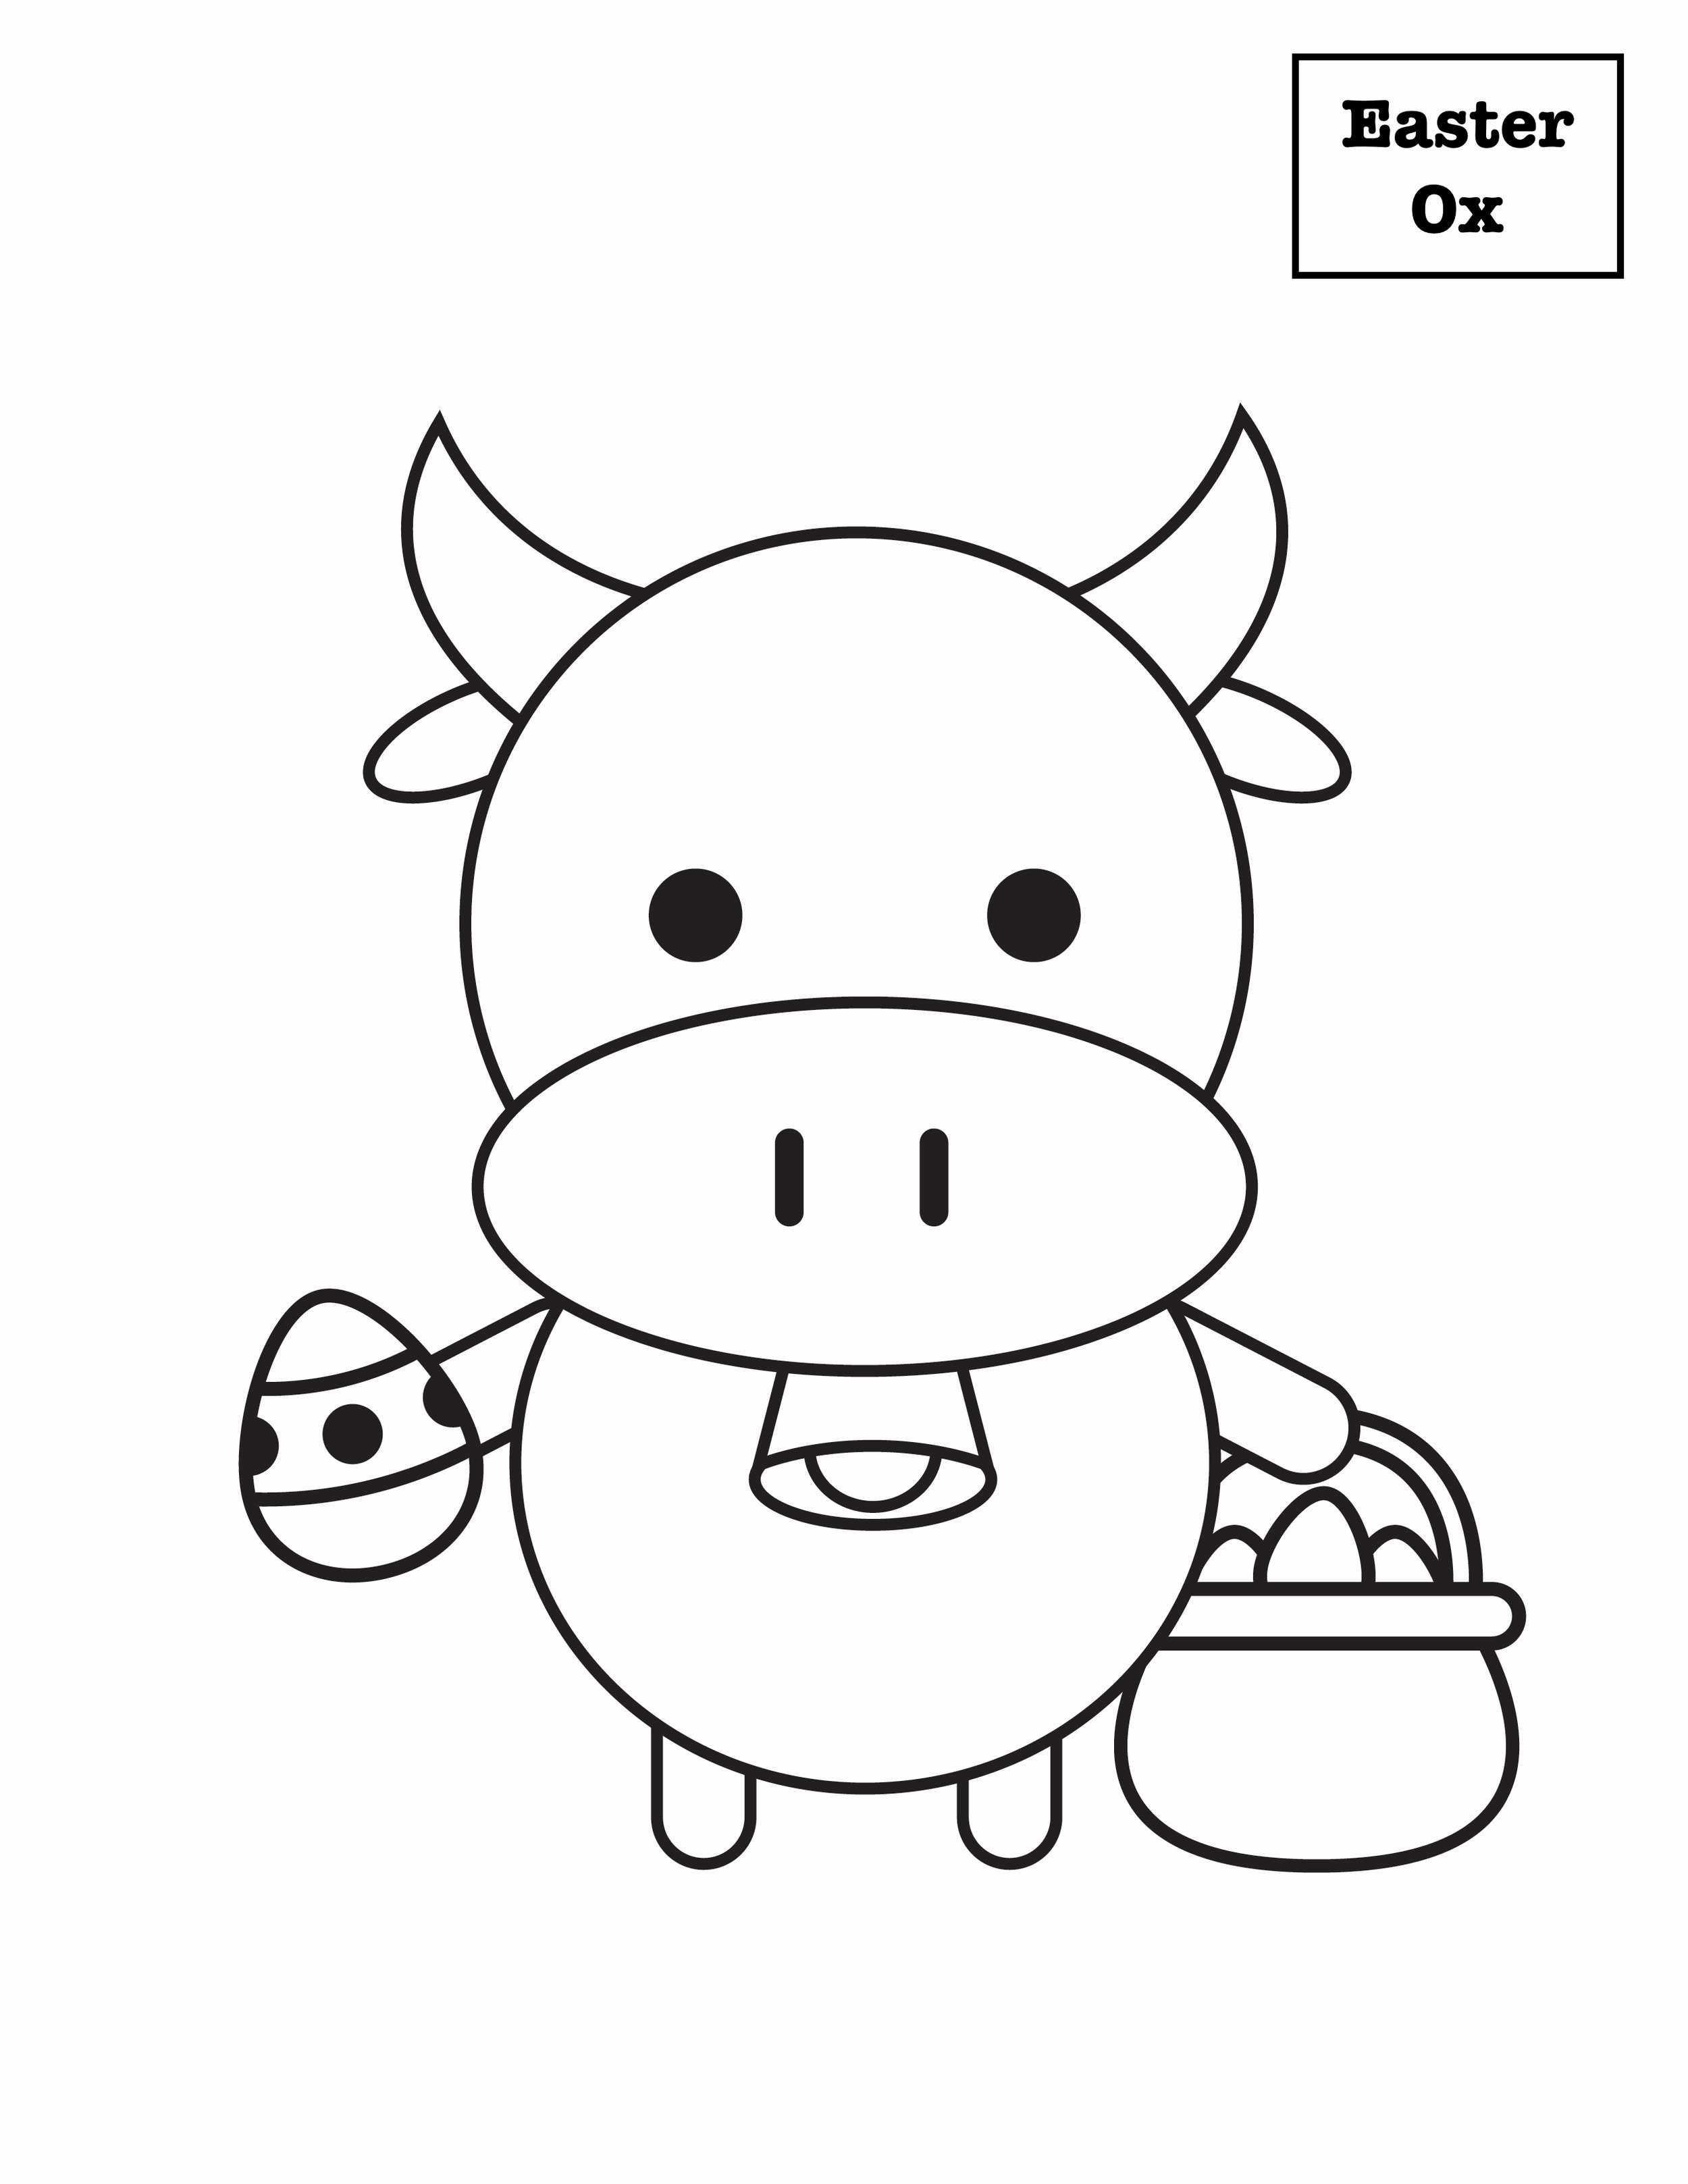 Easter Ox with Tag.jpeg